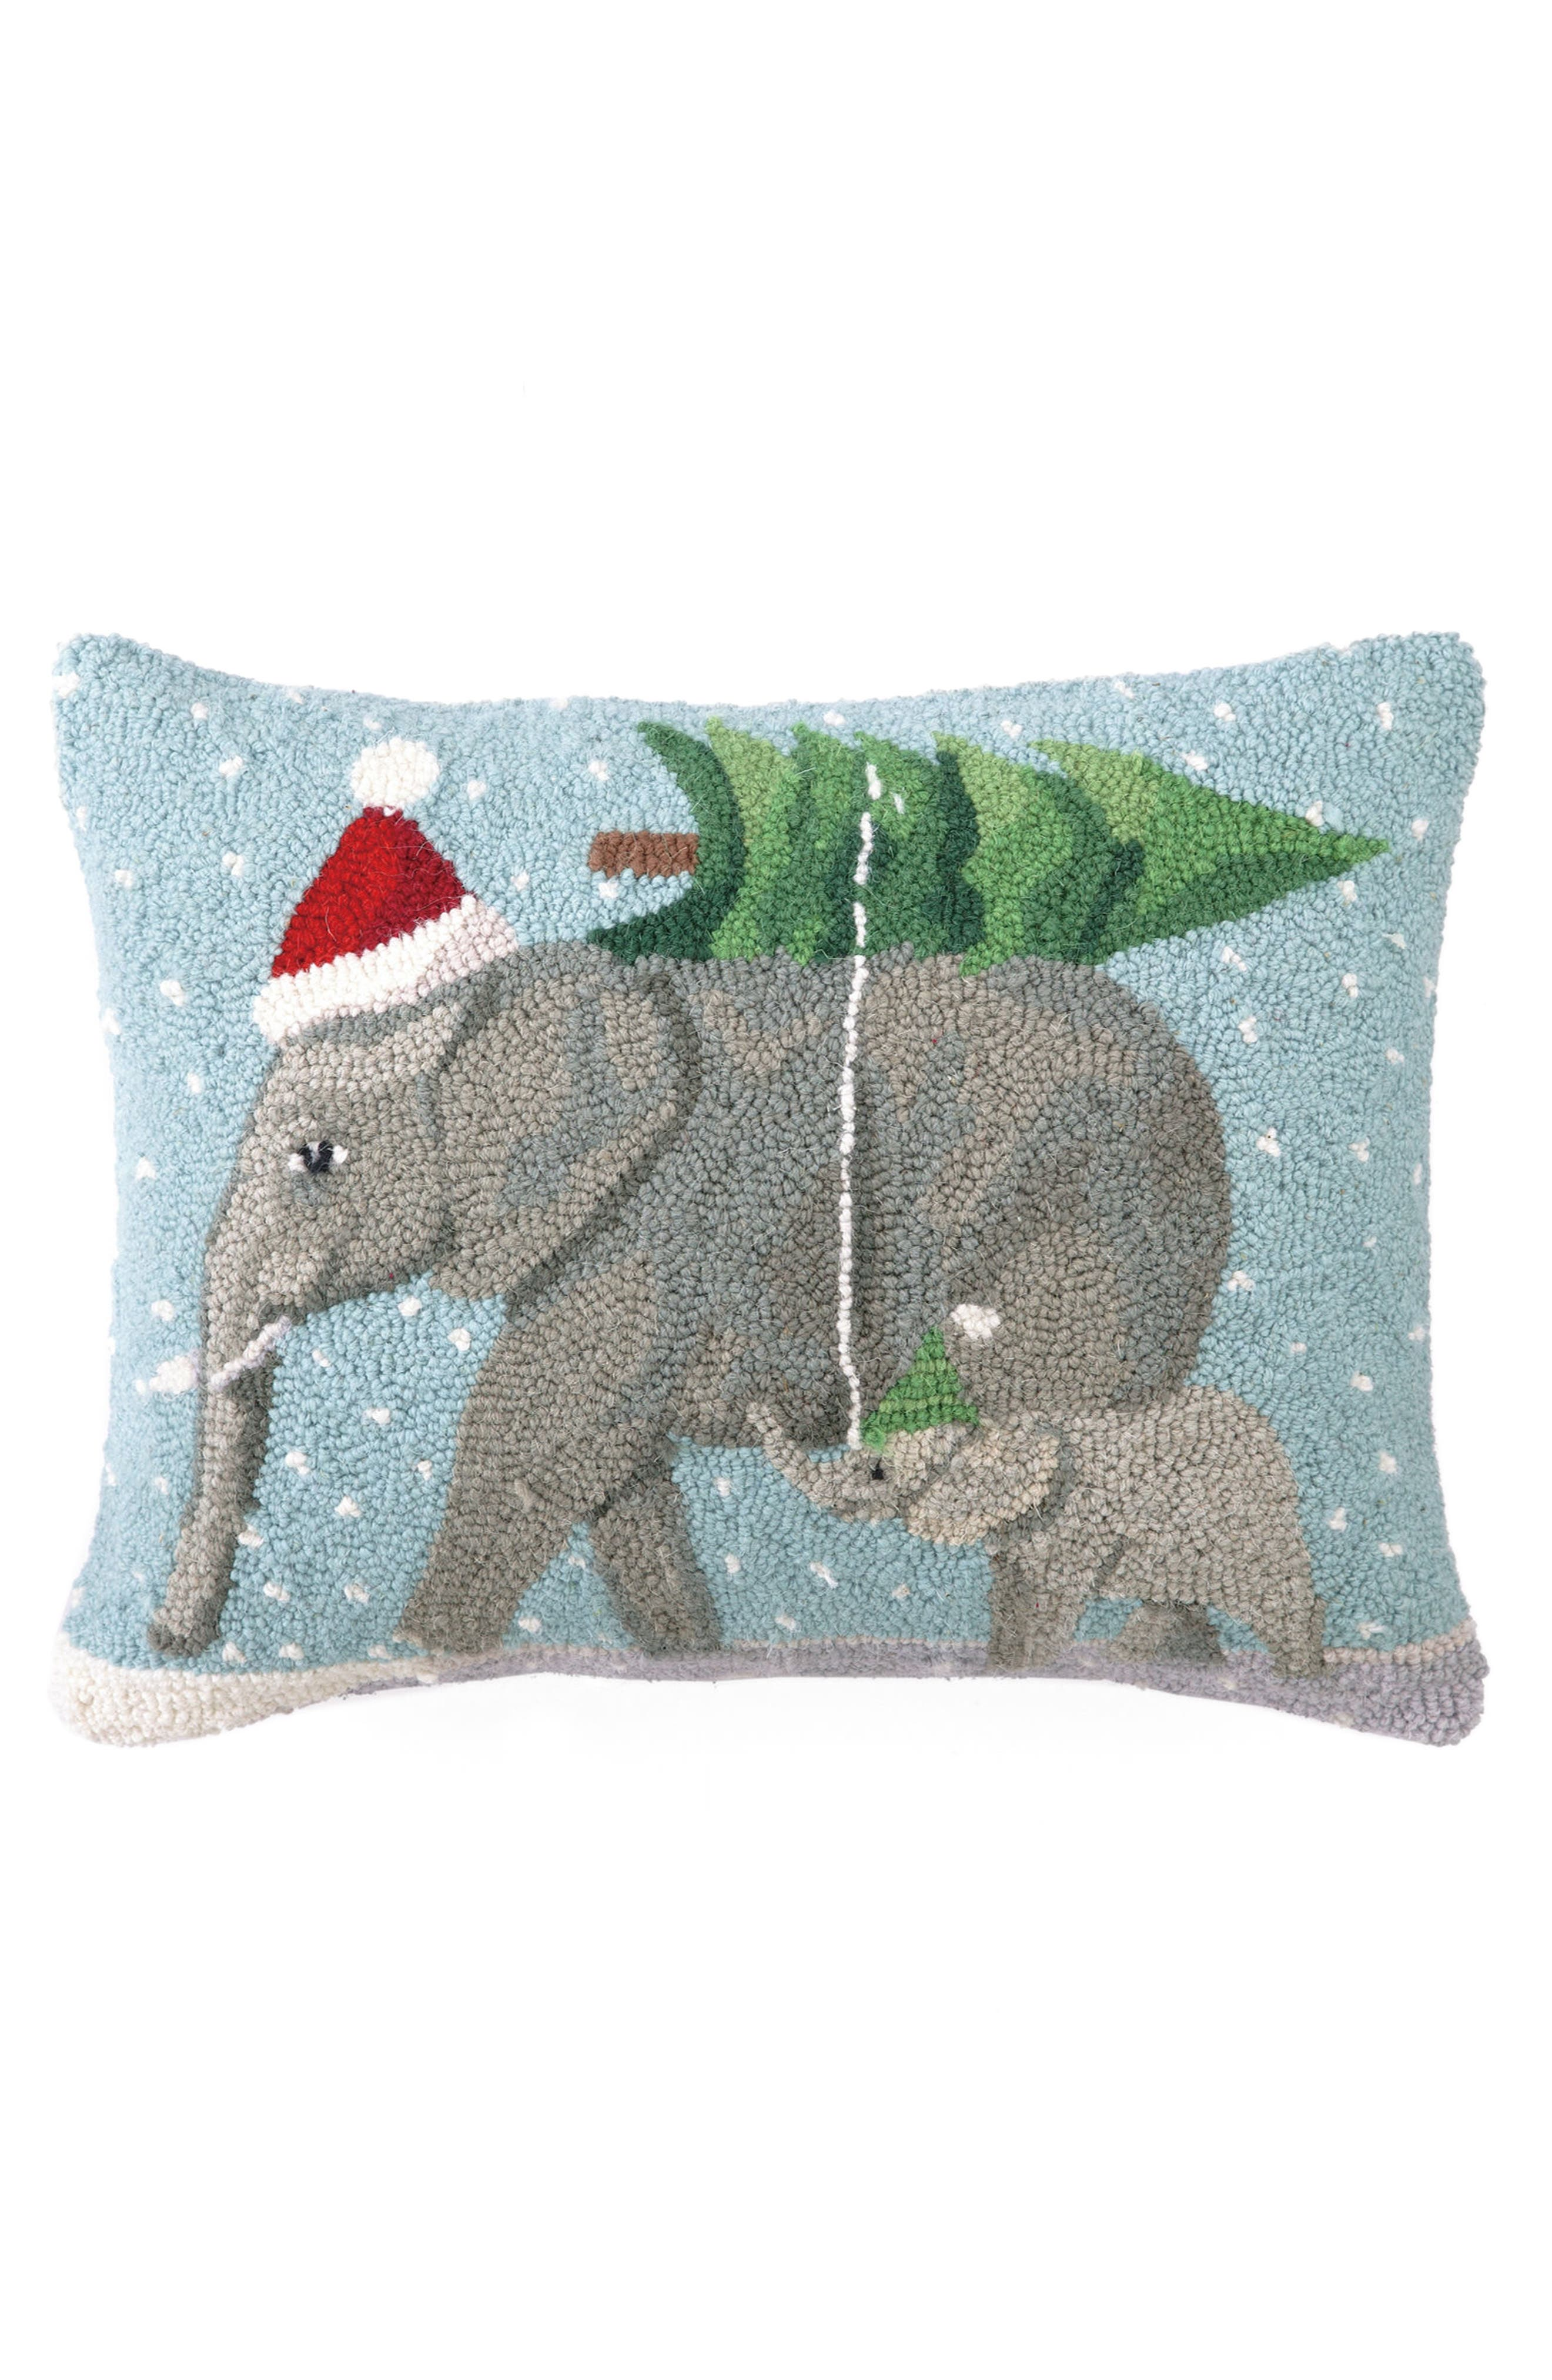 Alternate Image 1 Selected - Peking Handicraft Christmas Elephants Hooked Accent Pillow